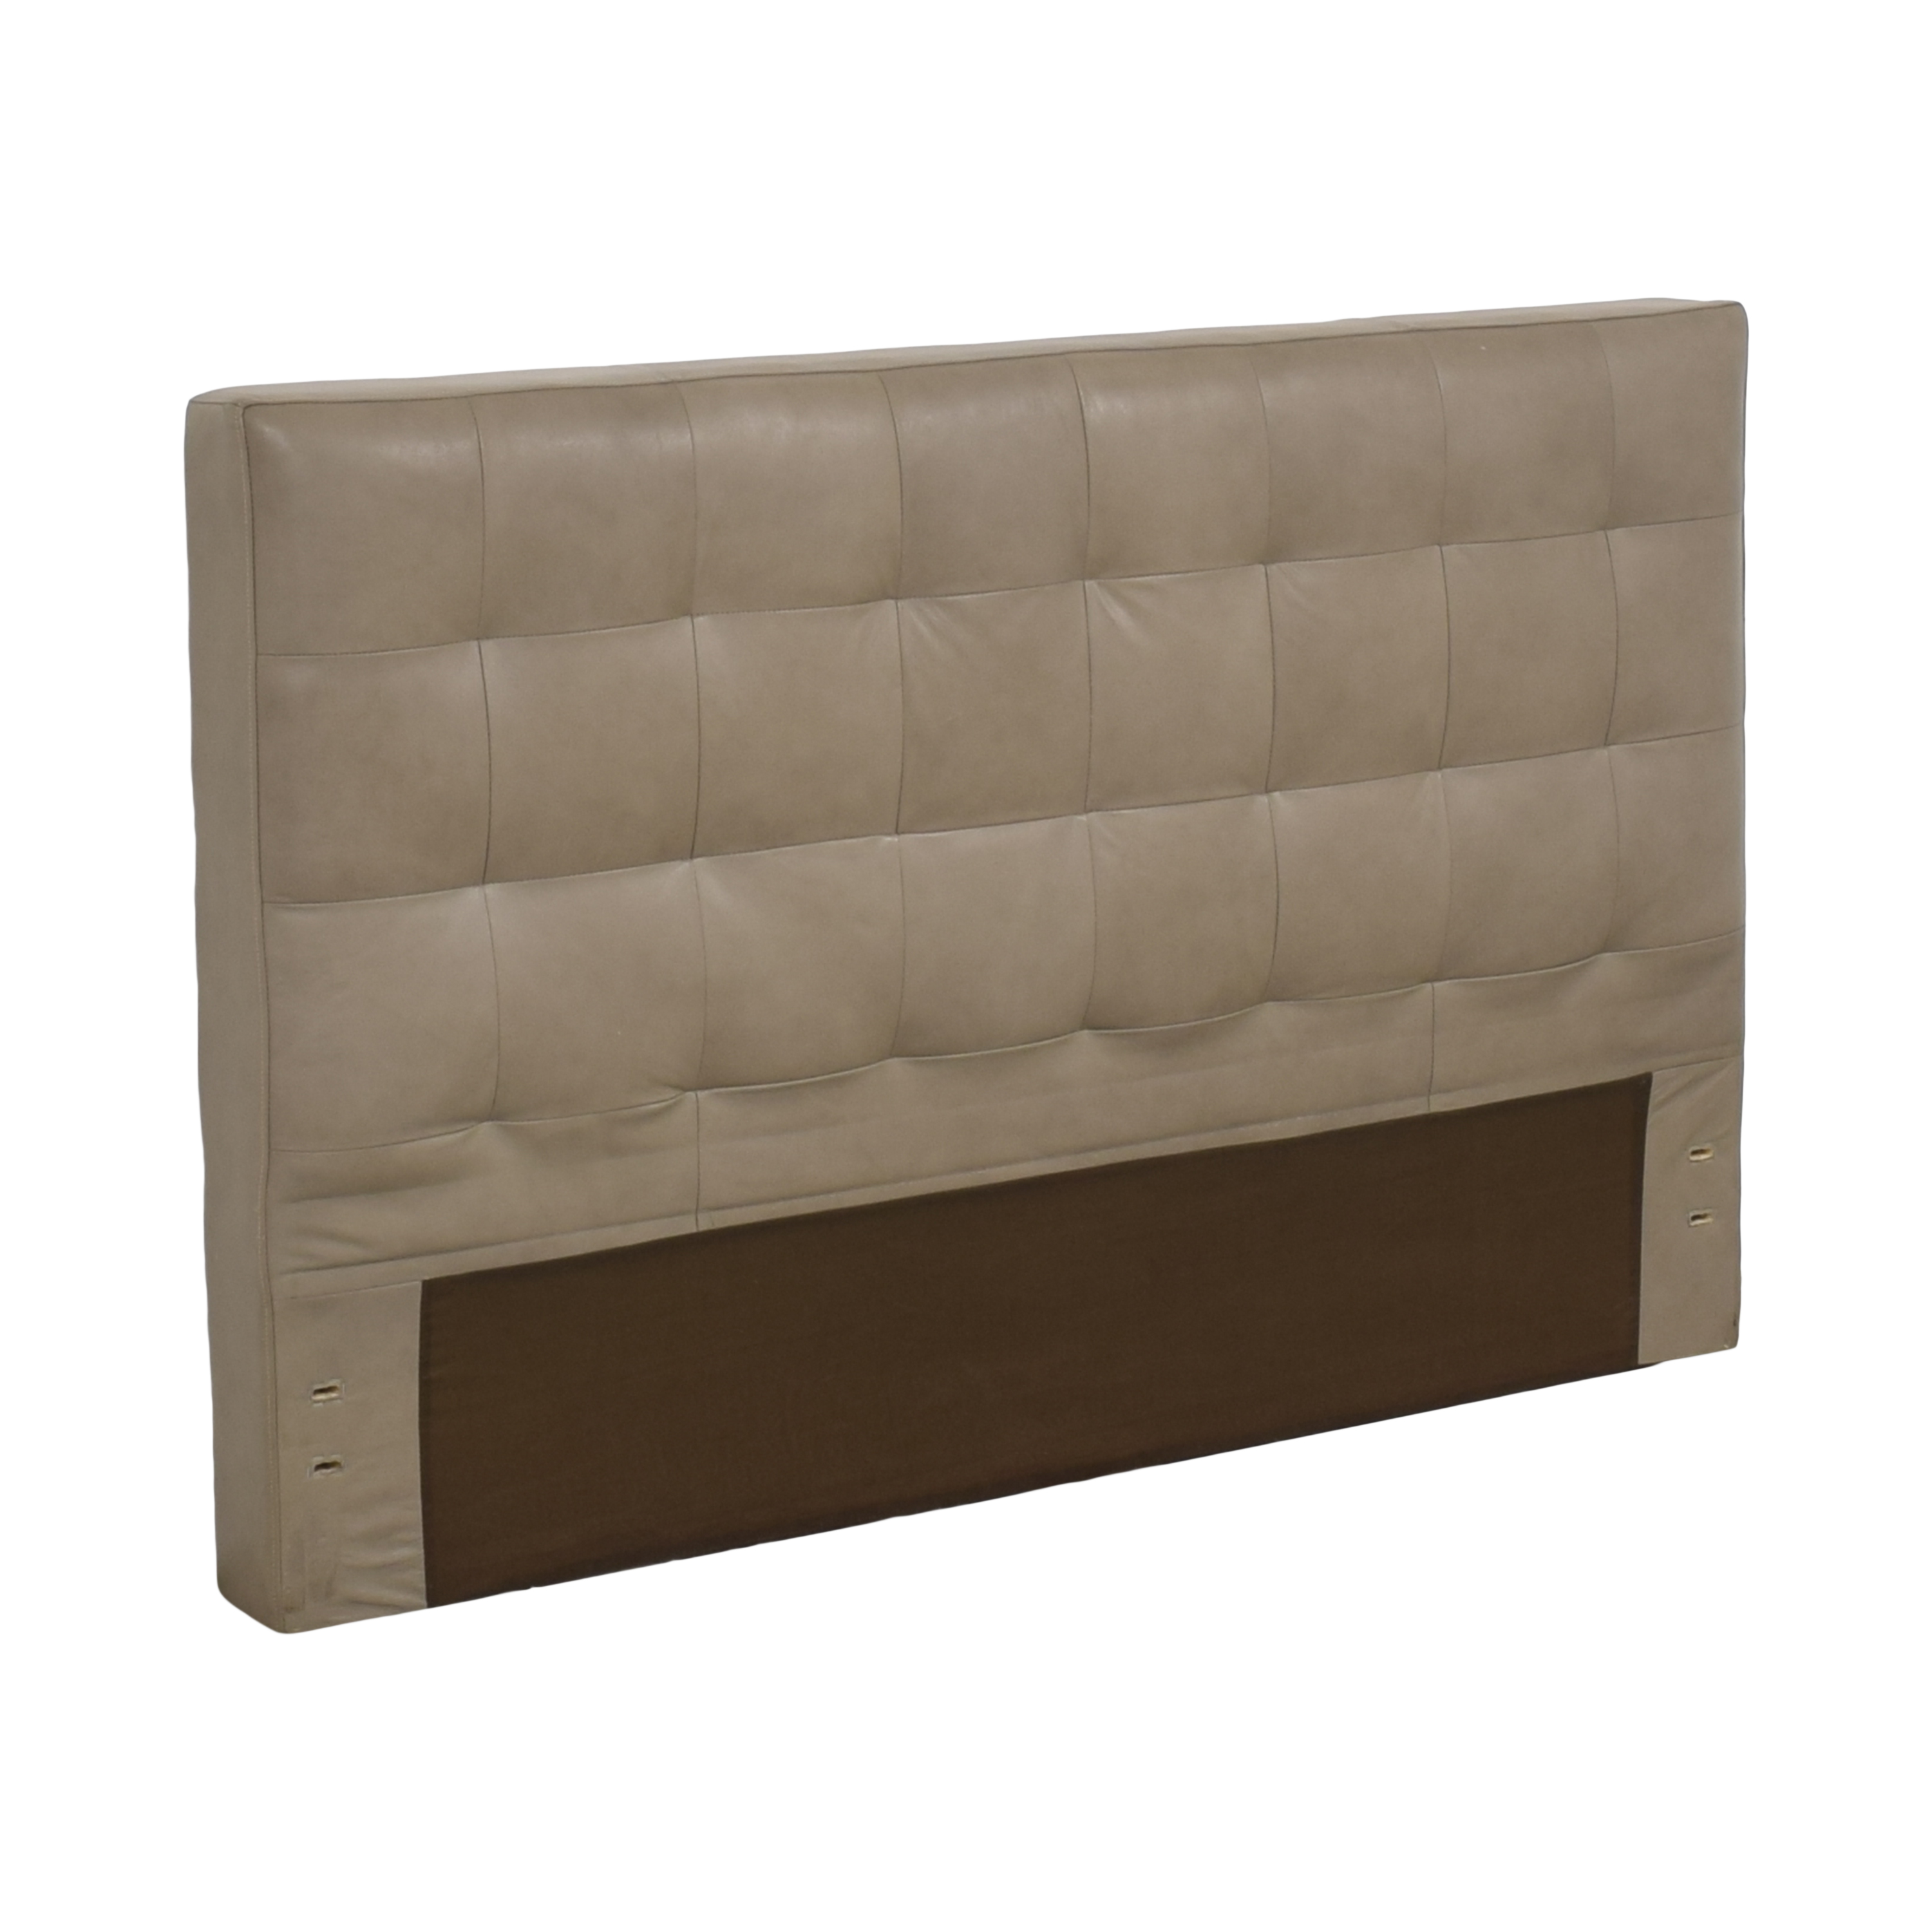 West Elm West Elm Tufted Queen Headboard dimensions